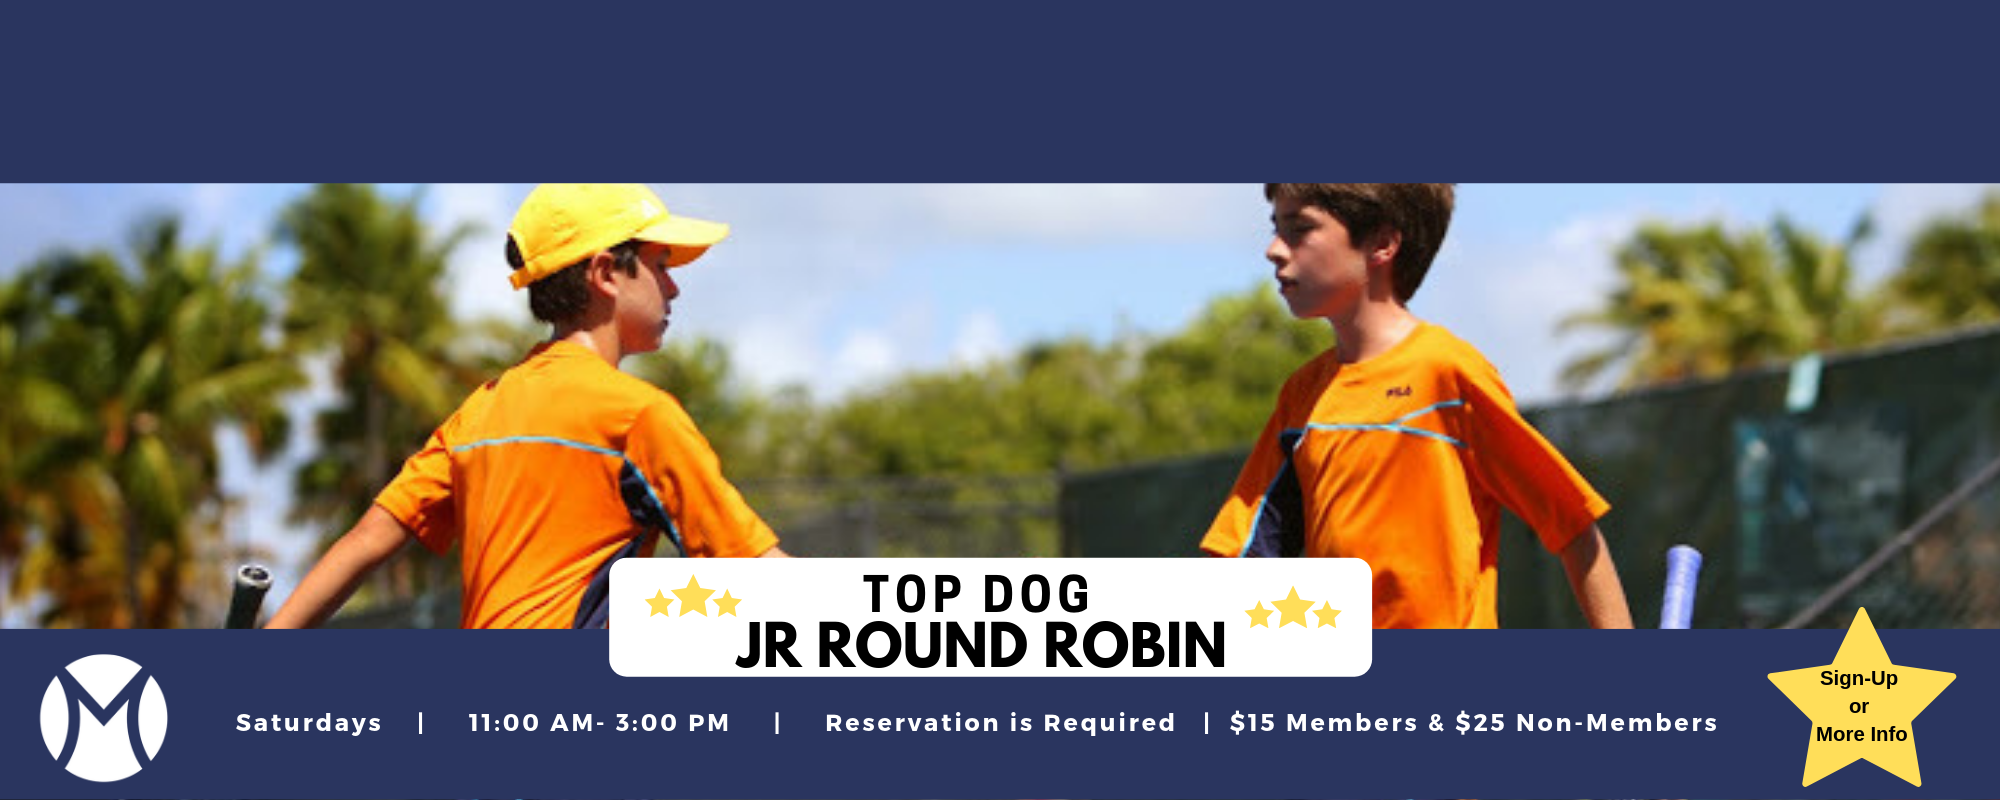 Copy of Top Dog Jr RR Website Banner (5)